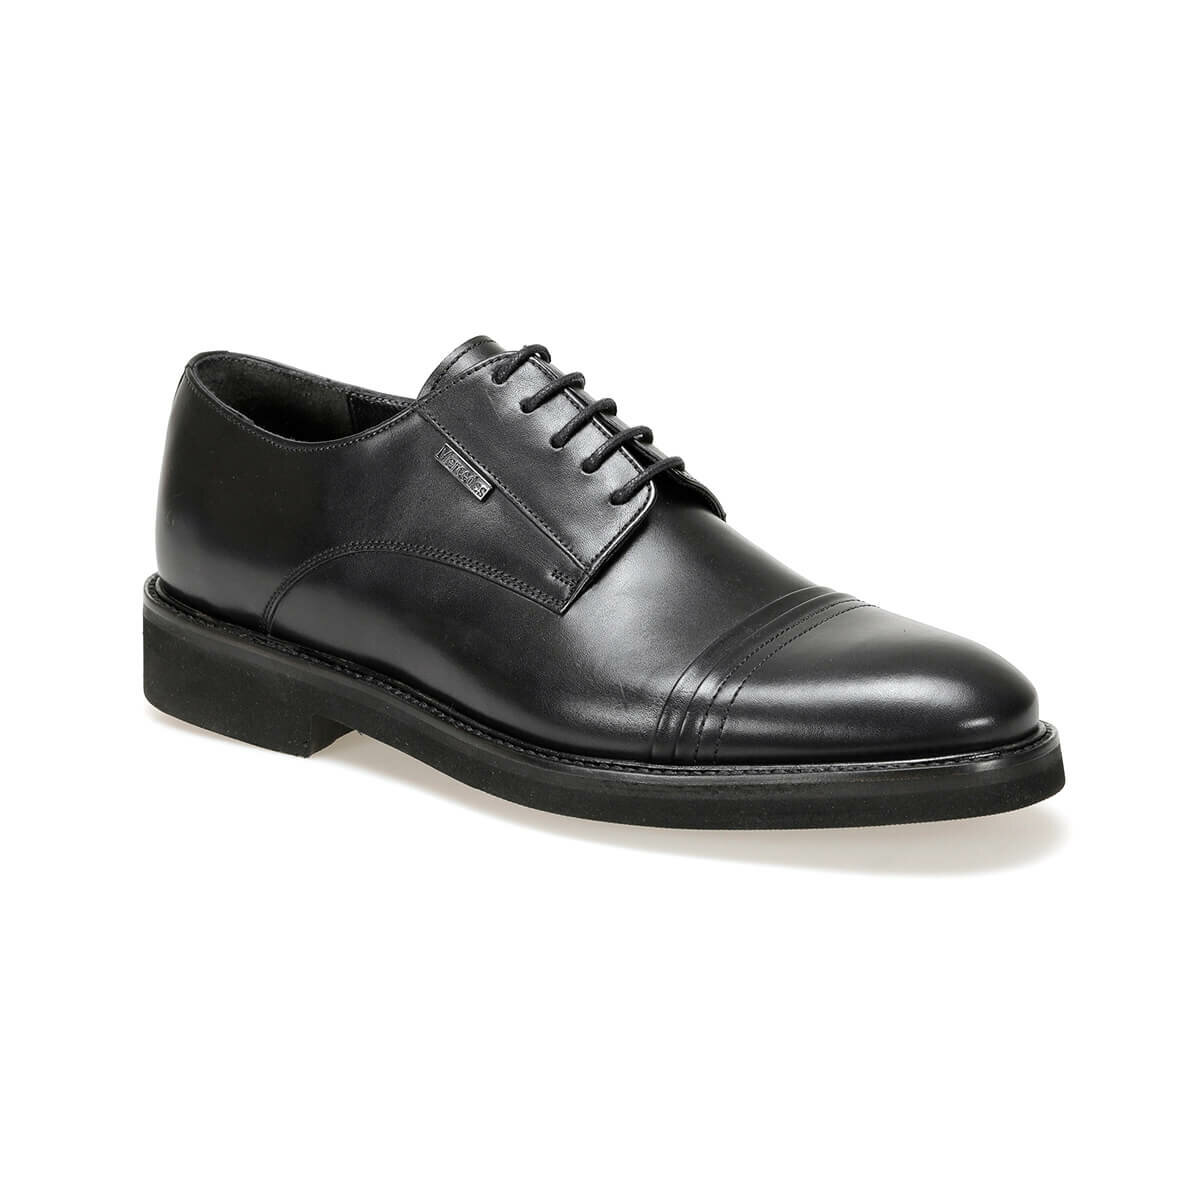 FLO BOGDAN 9PR Black Men 'S Classic Shoes MERCEDES